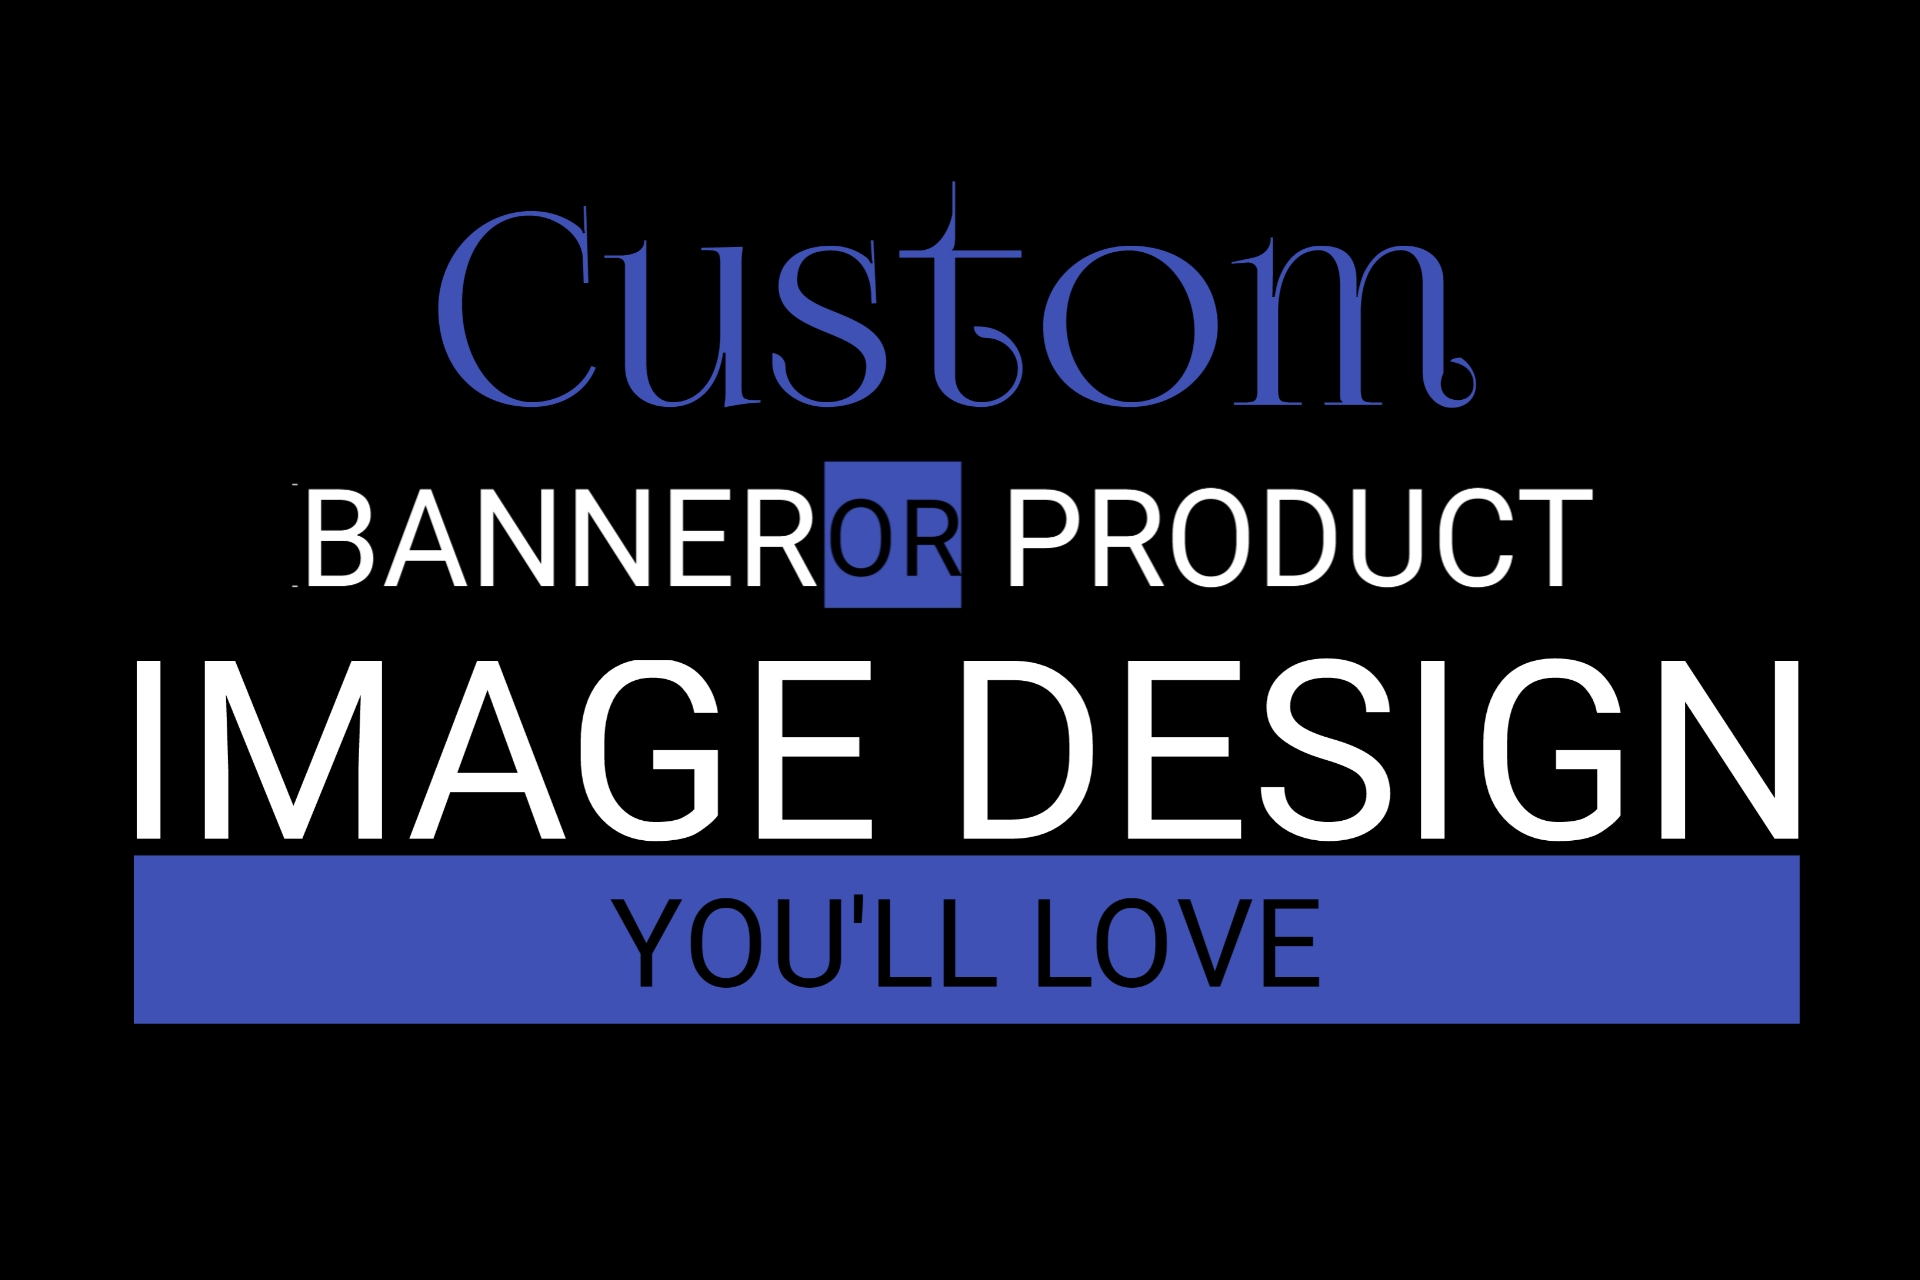 Design simple and 3d text banner for your website blog and social media